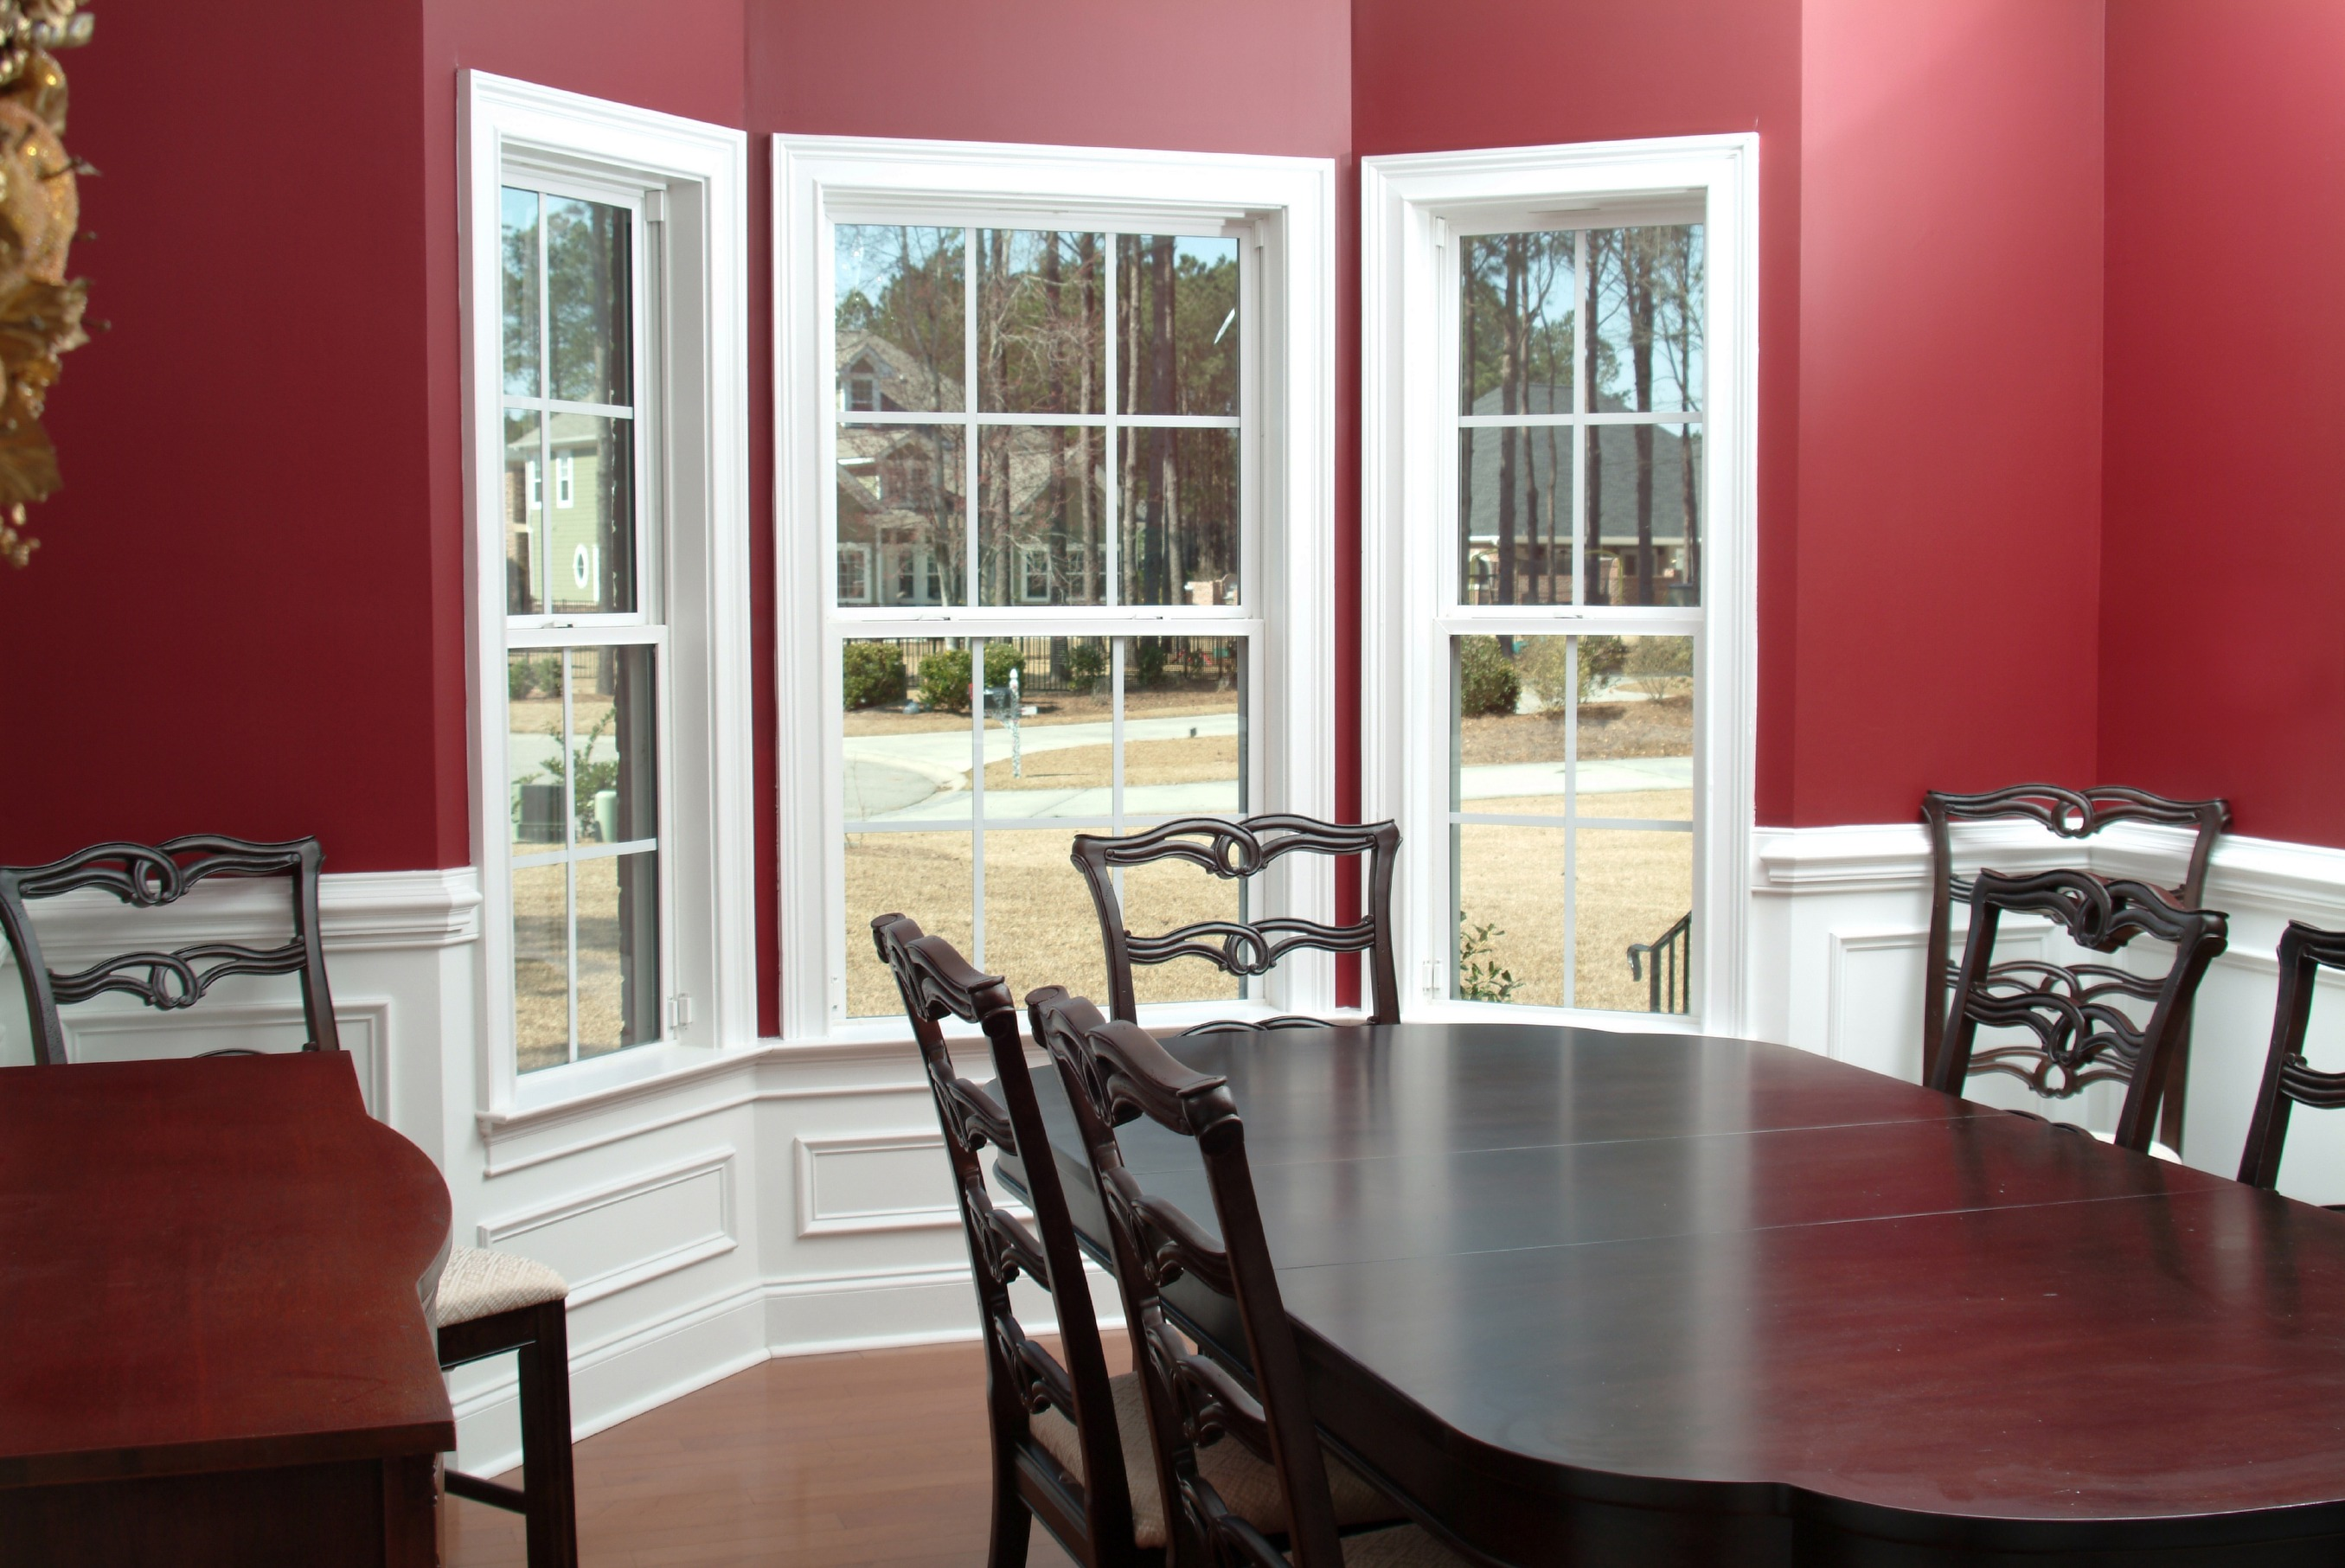 A dining room with three tall windows showing the neighborhood outside.